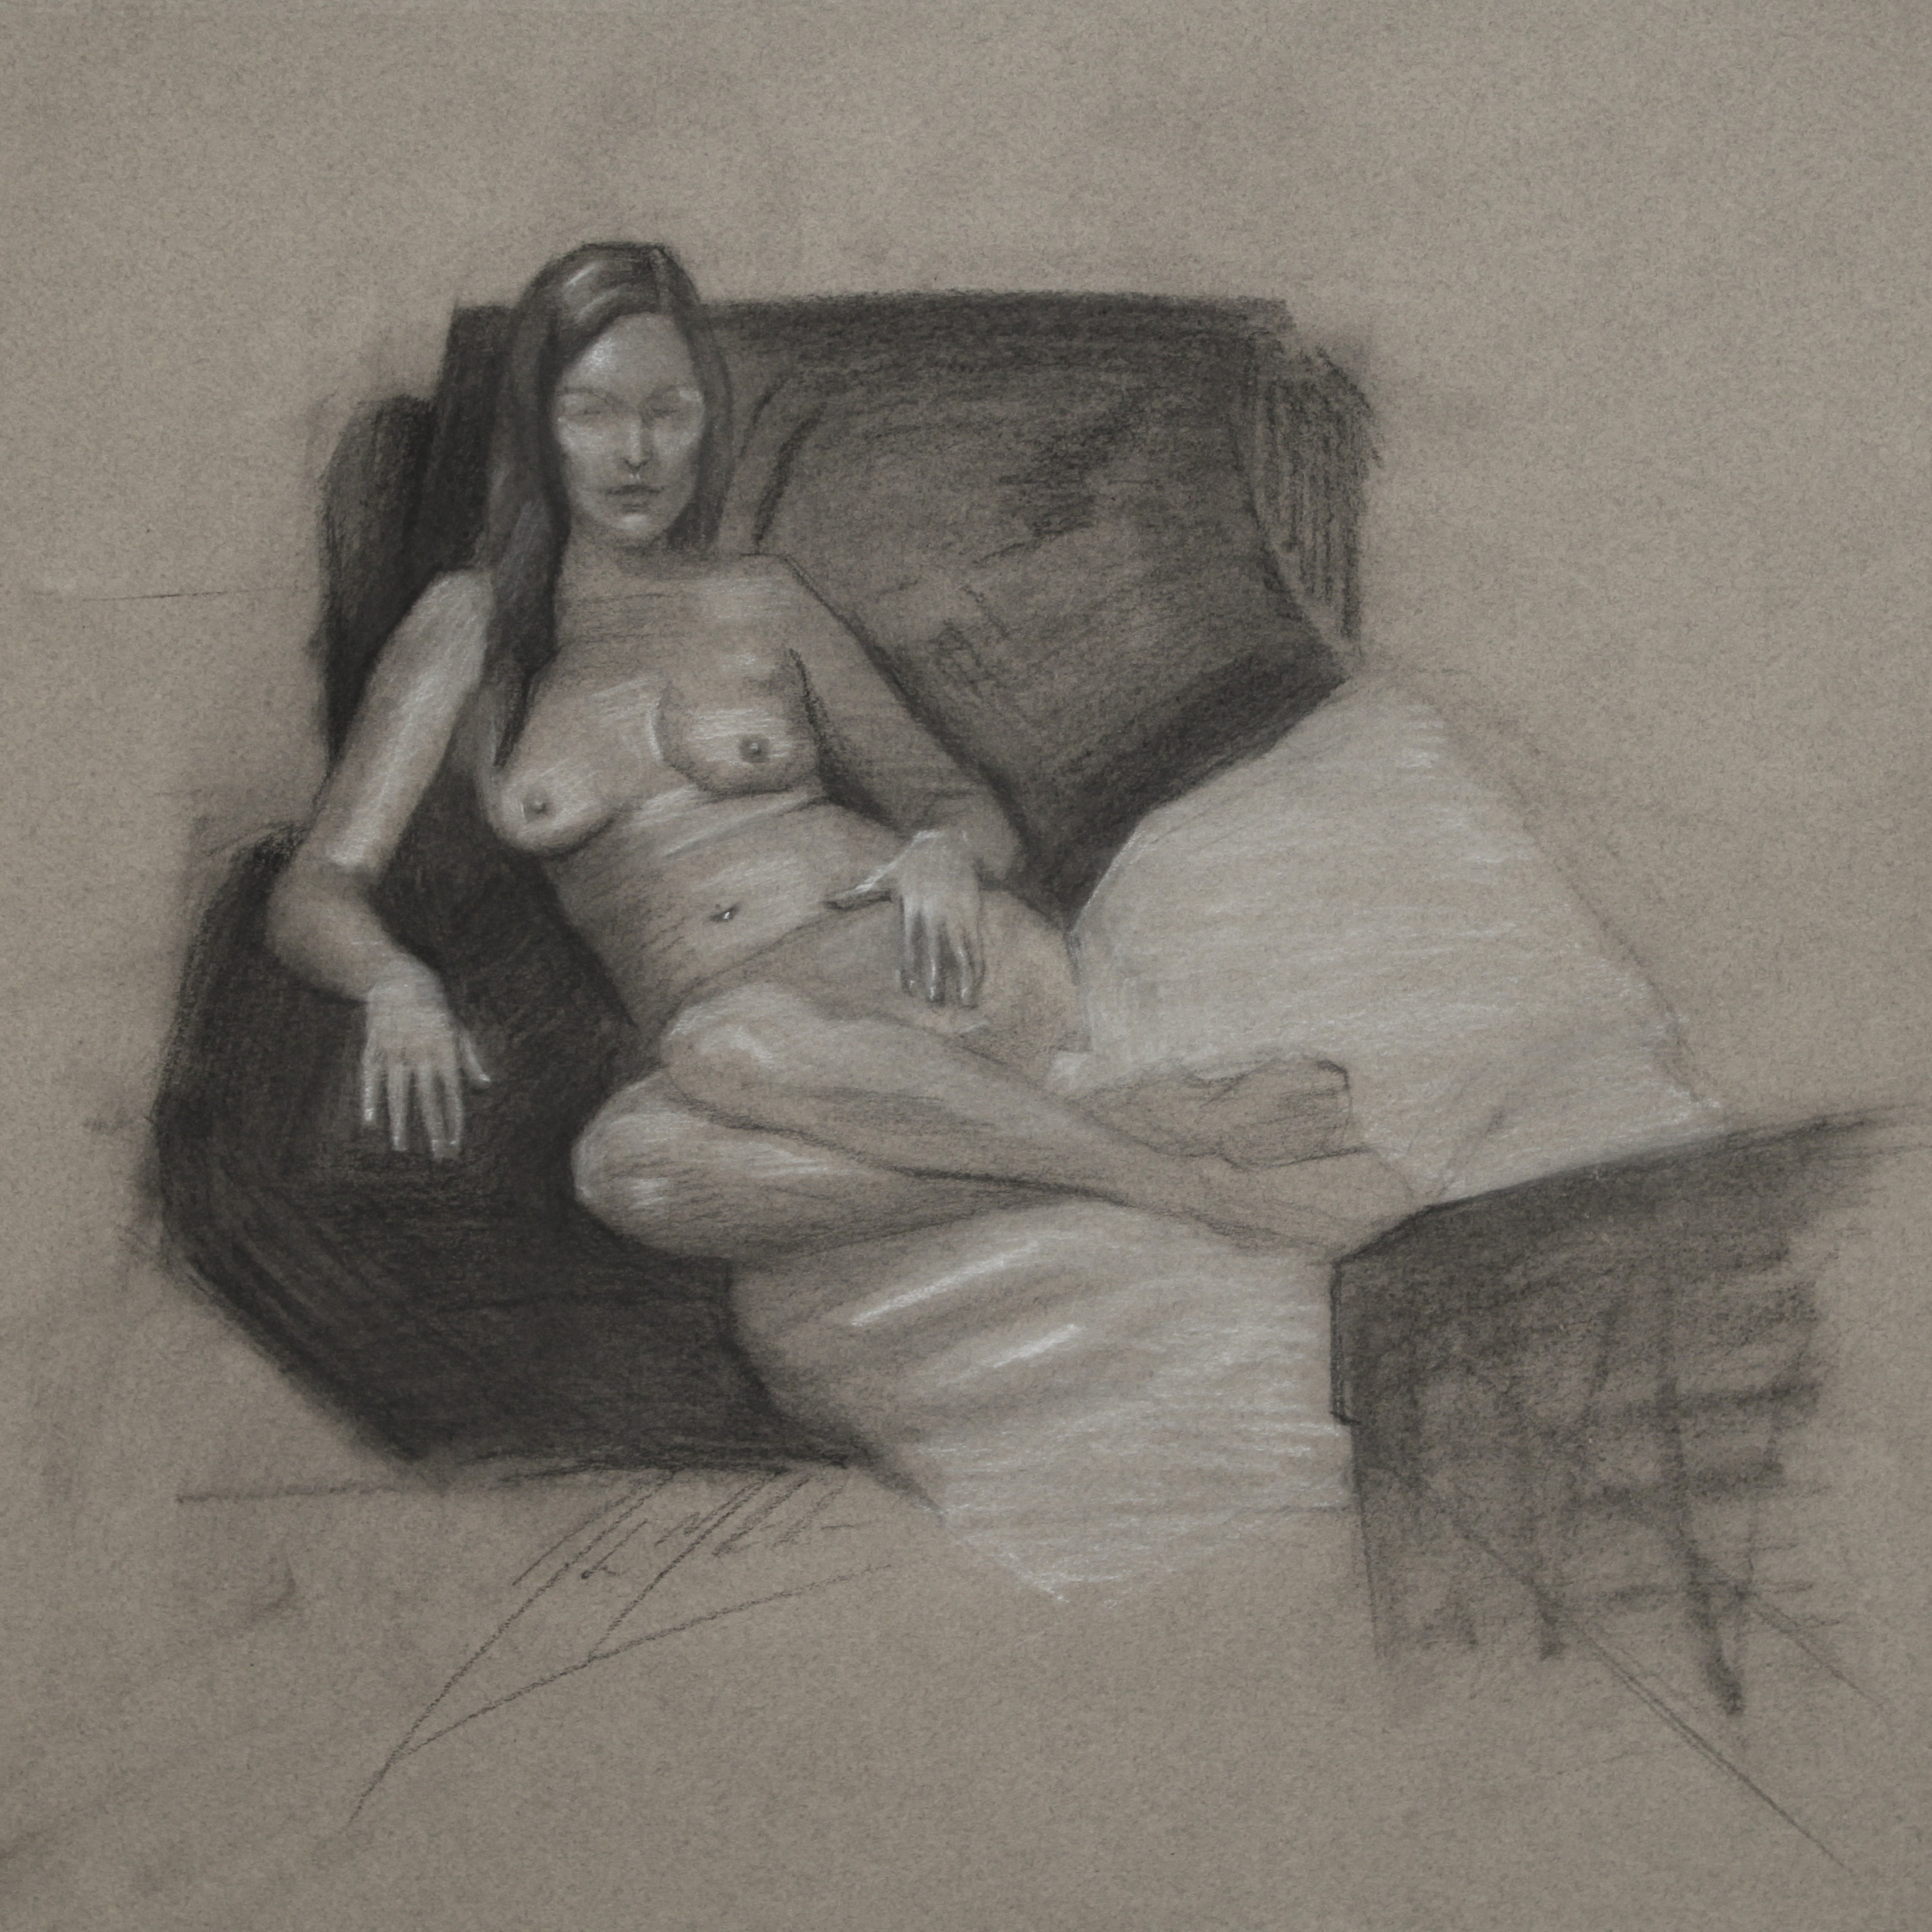 Sierra, 2014, charcoal on paper, 13 x 13 inches